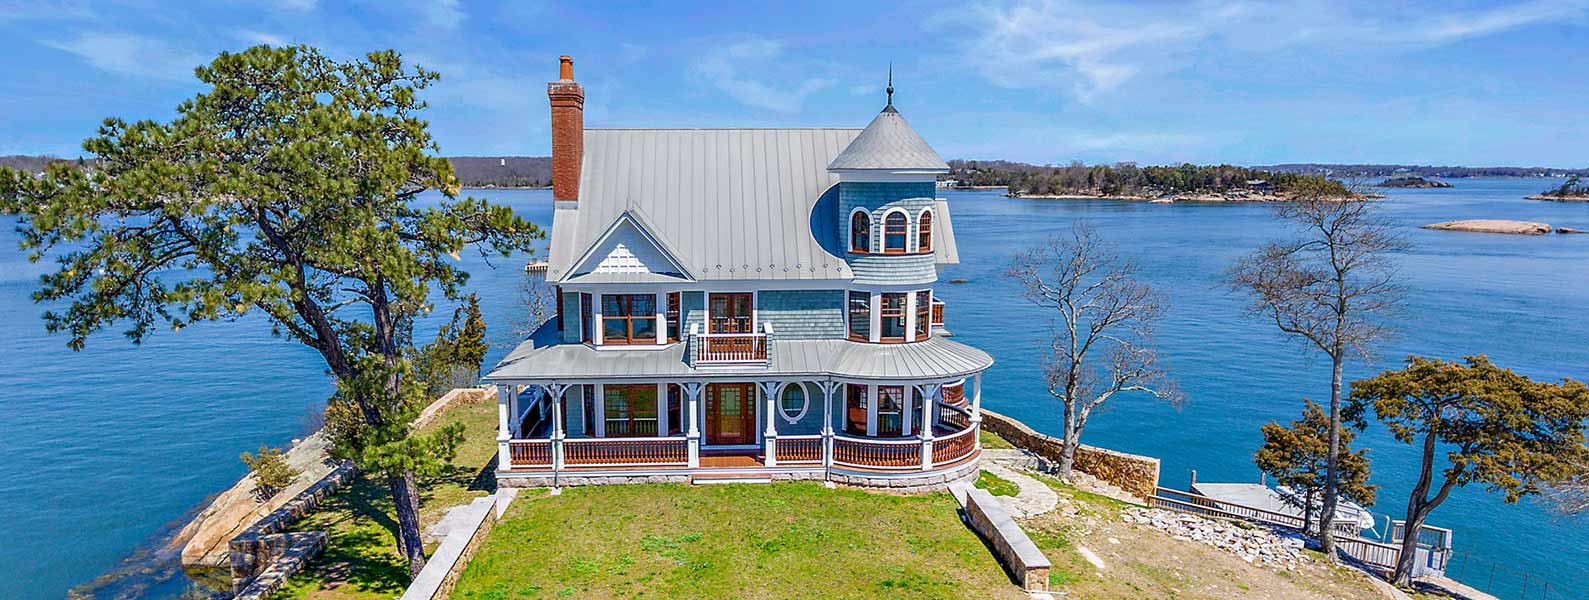 Private Islands for sale - Cut in Two Island West - Connecticut - USA